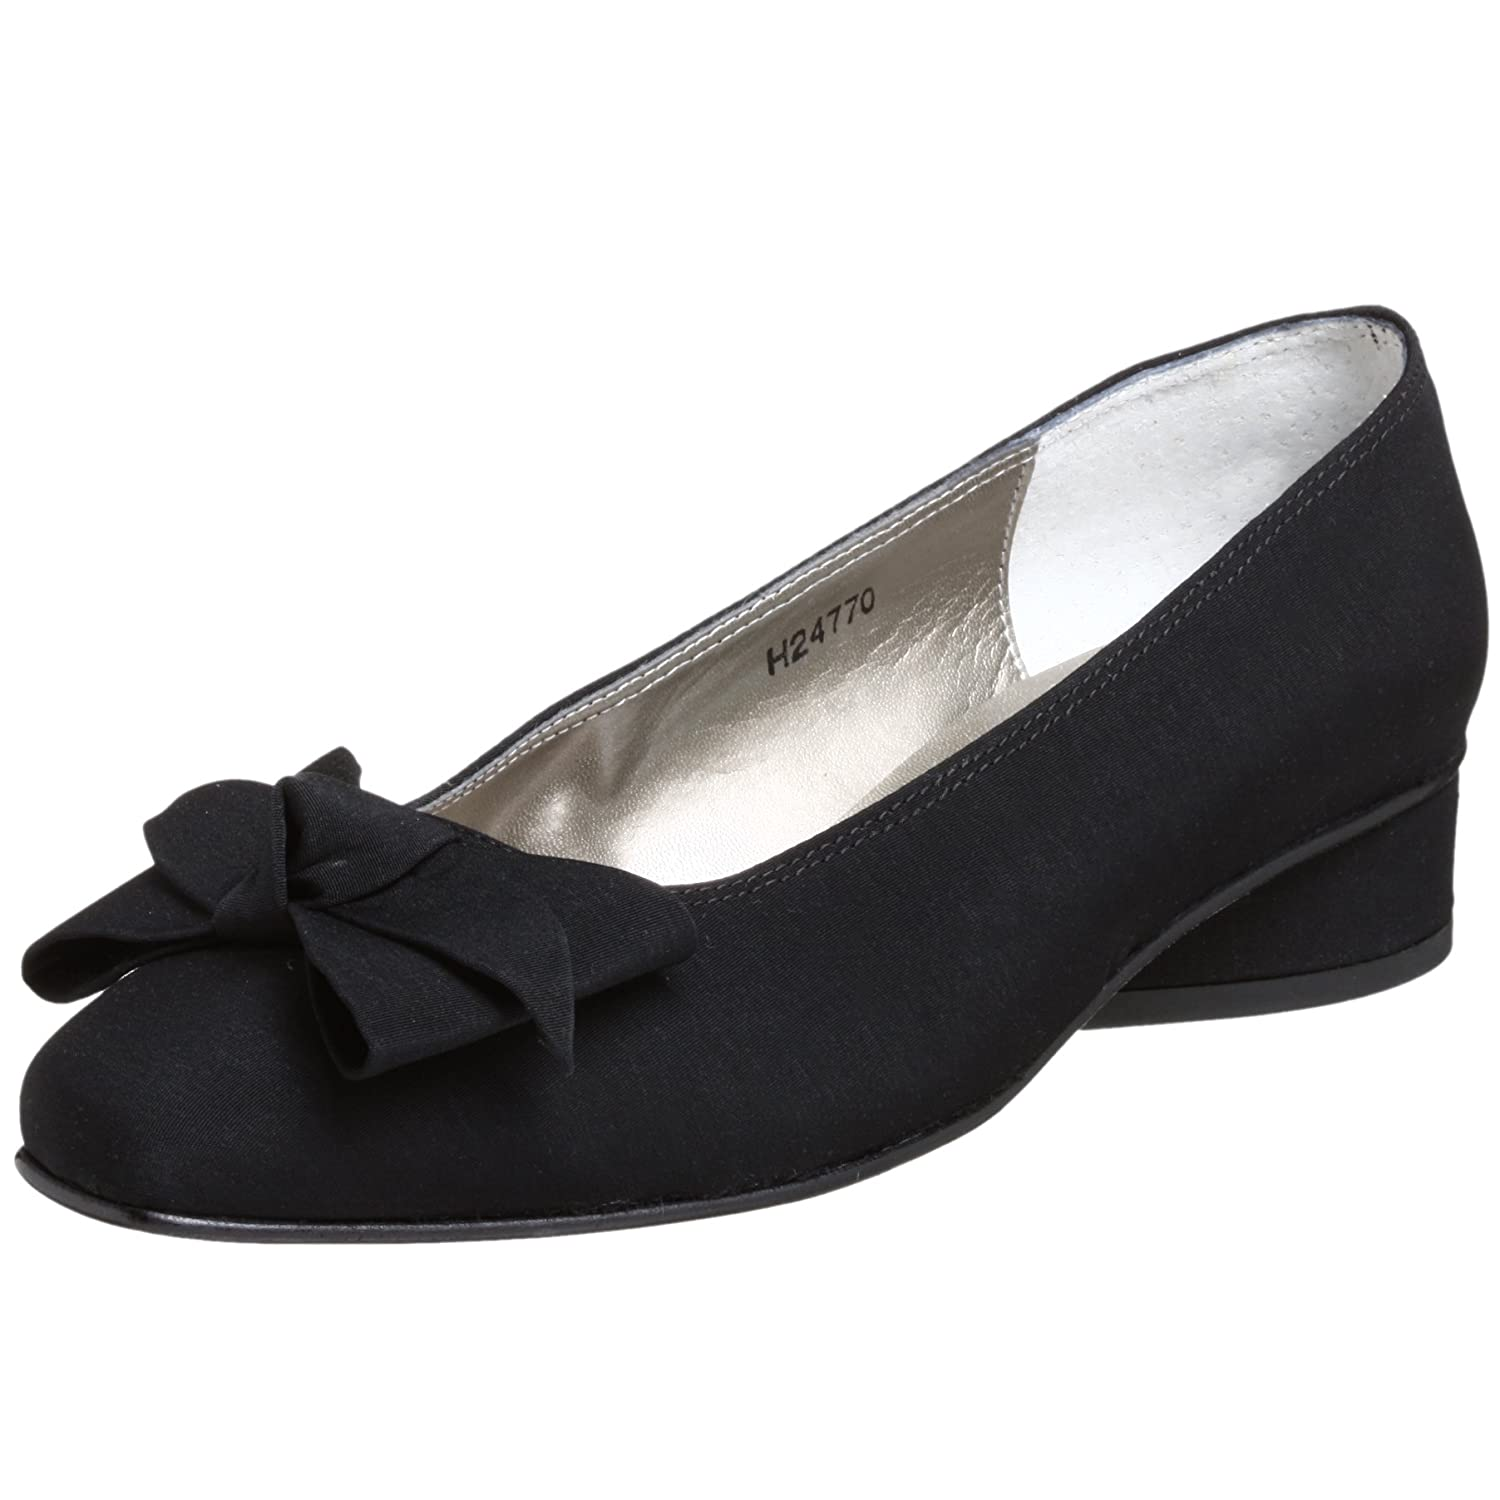 Black Flat Dress Shoes